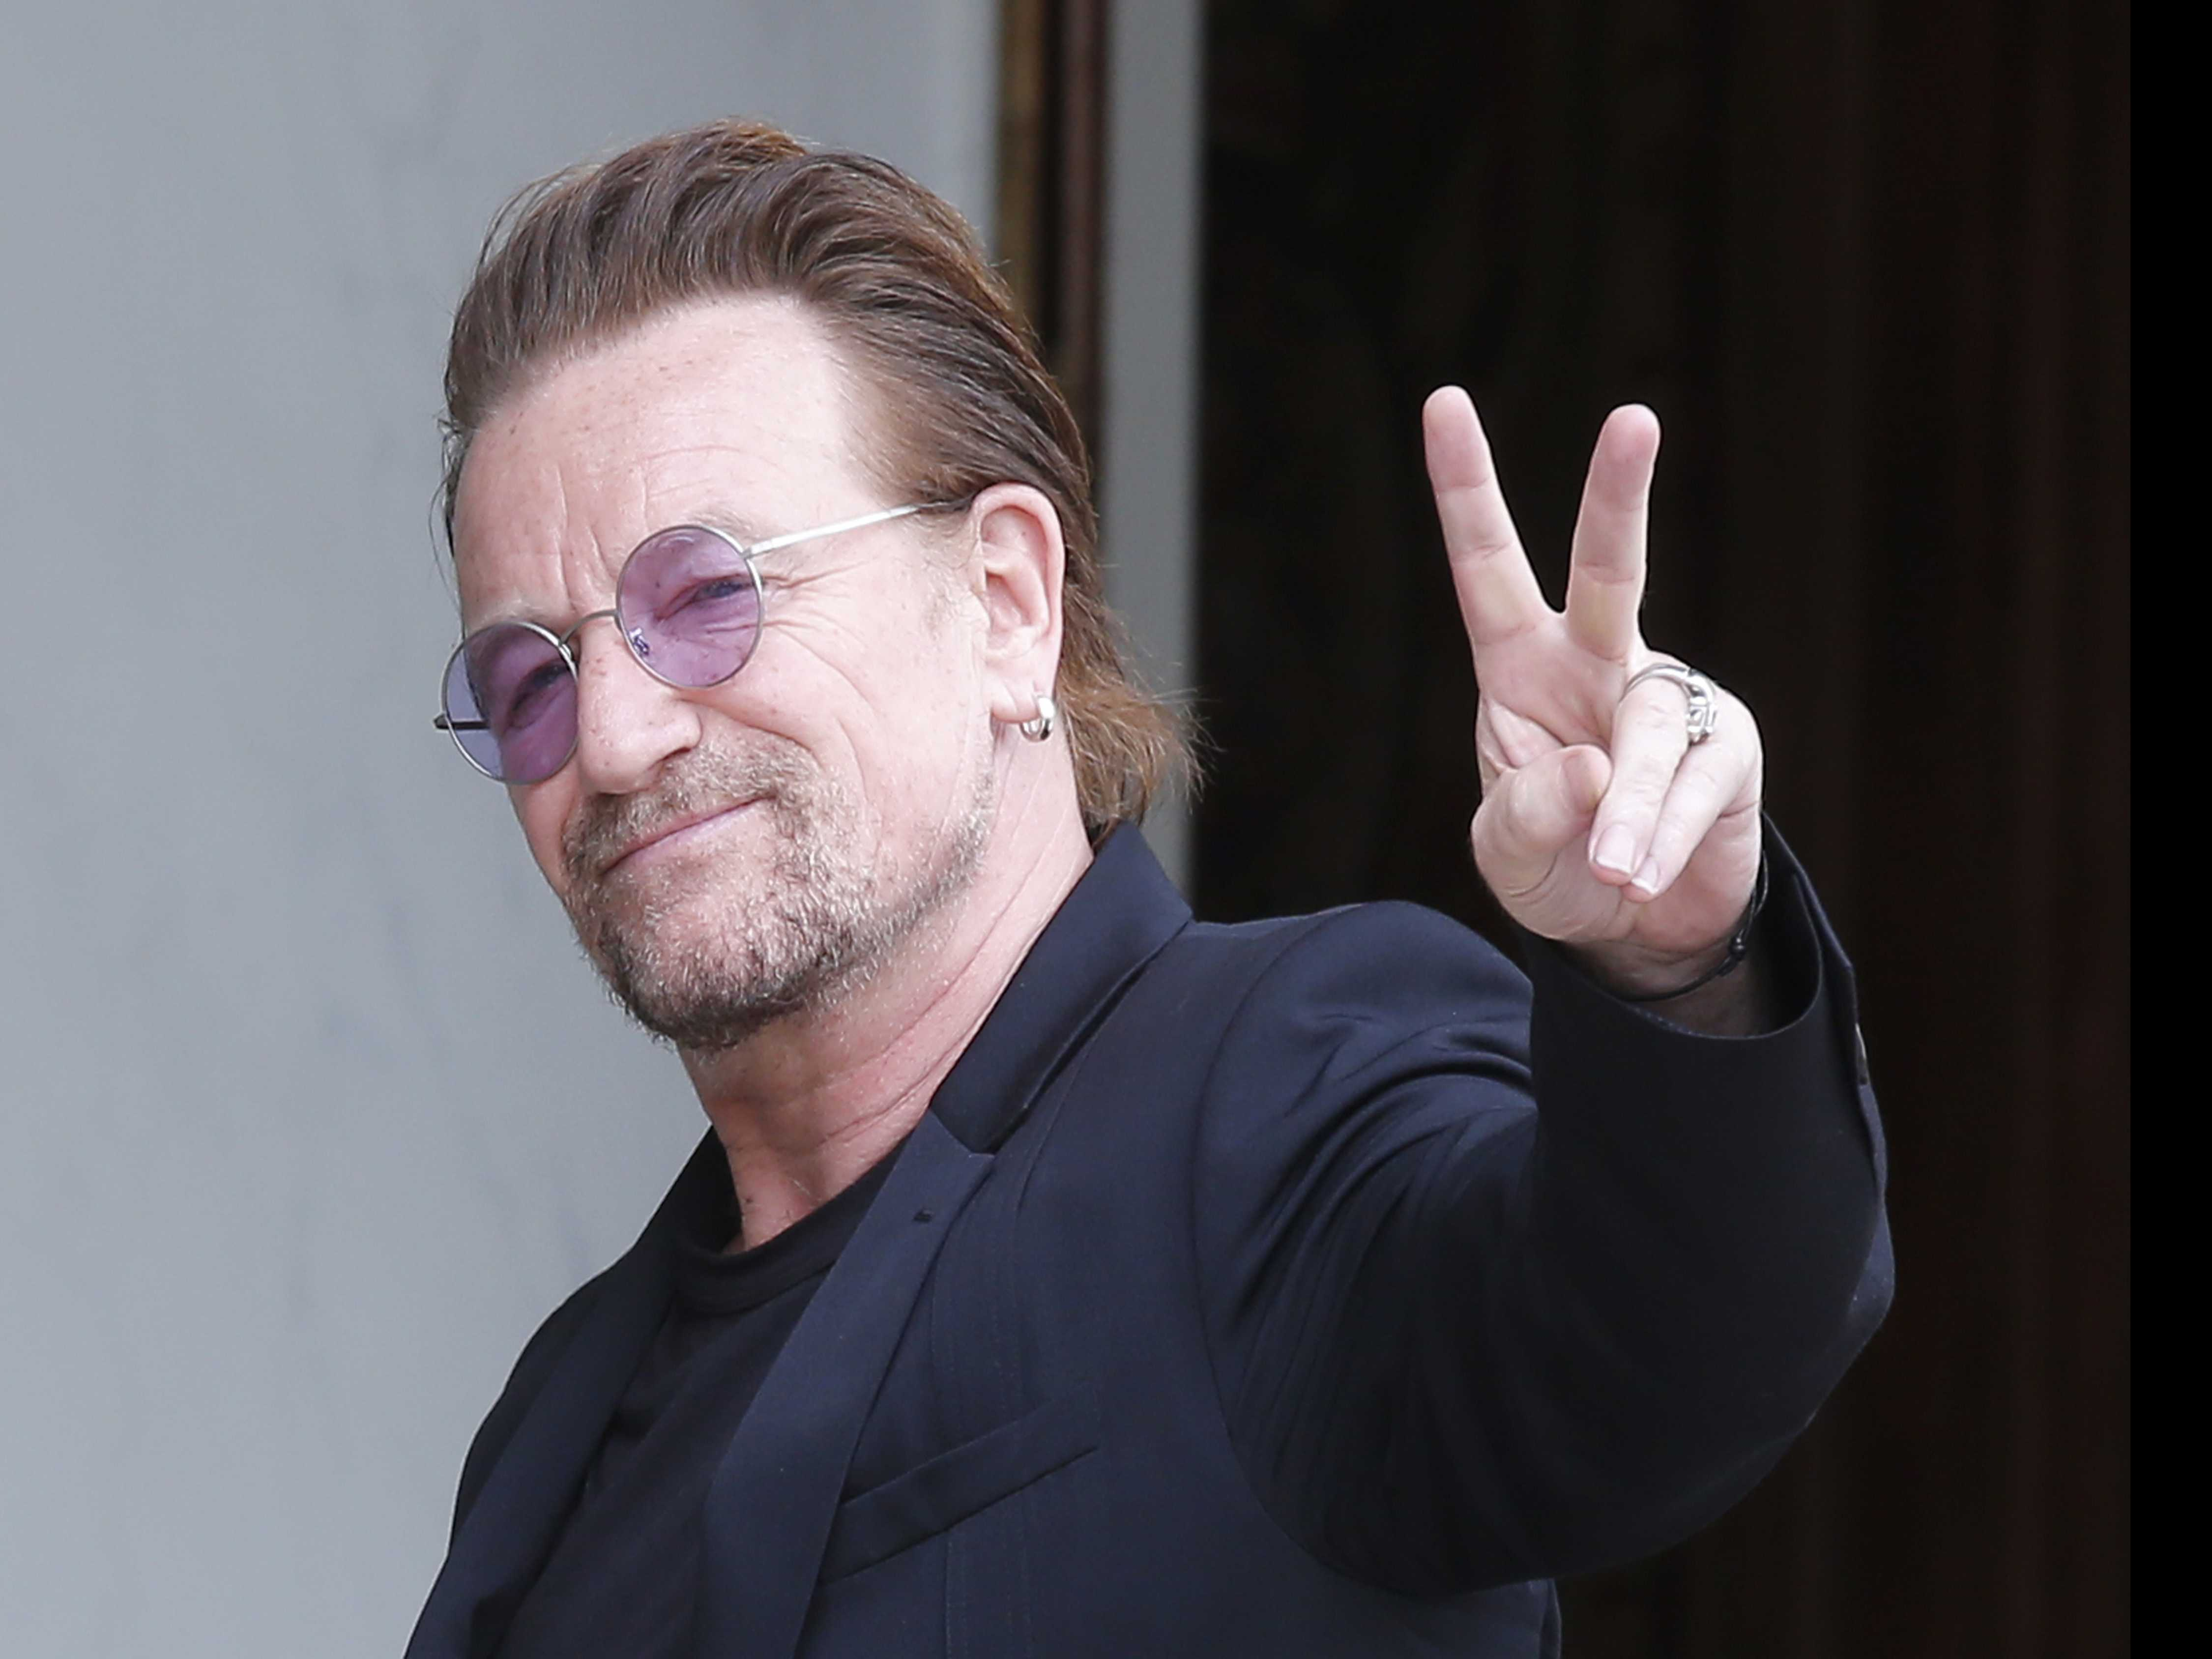 U2 Concert Ends Early After Bono Loses Voice in Berlin